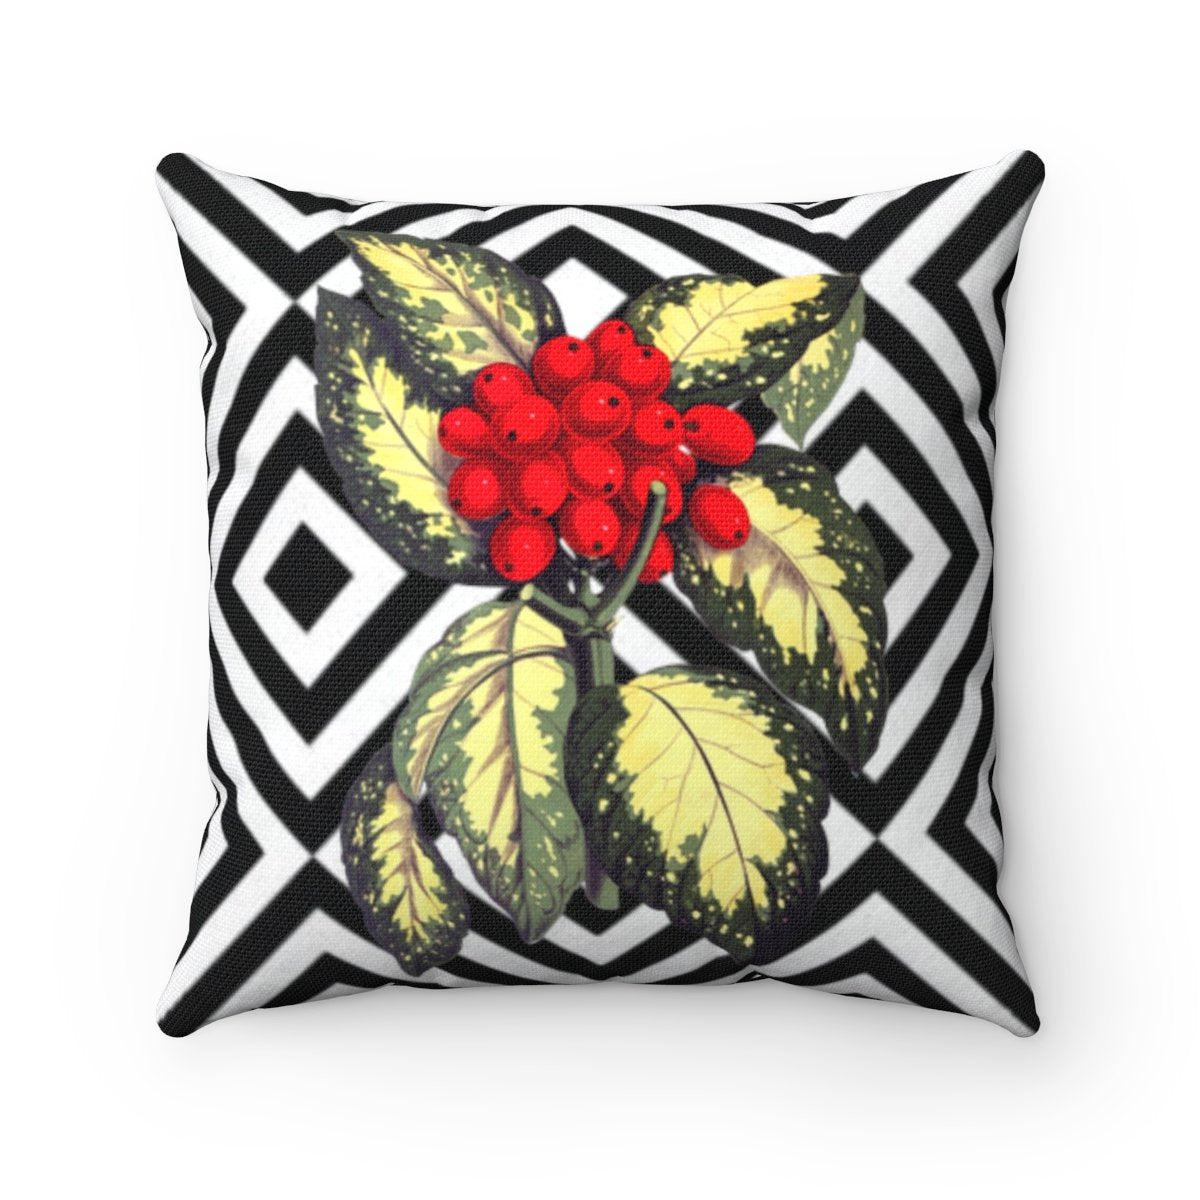 Luxury fruits abstract decorative cushion cover-Home Decor - Decorative Accents - Pillows & Throws - Decorative Pillows-Maison d'Elite-14x14-Très Elite